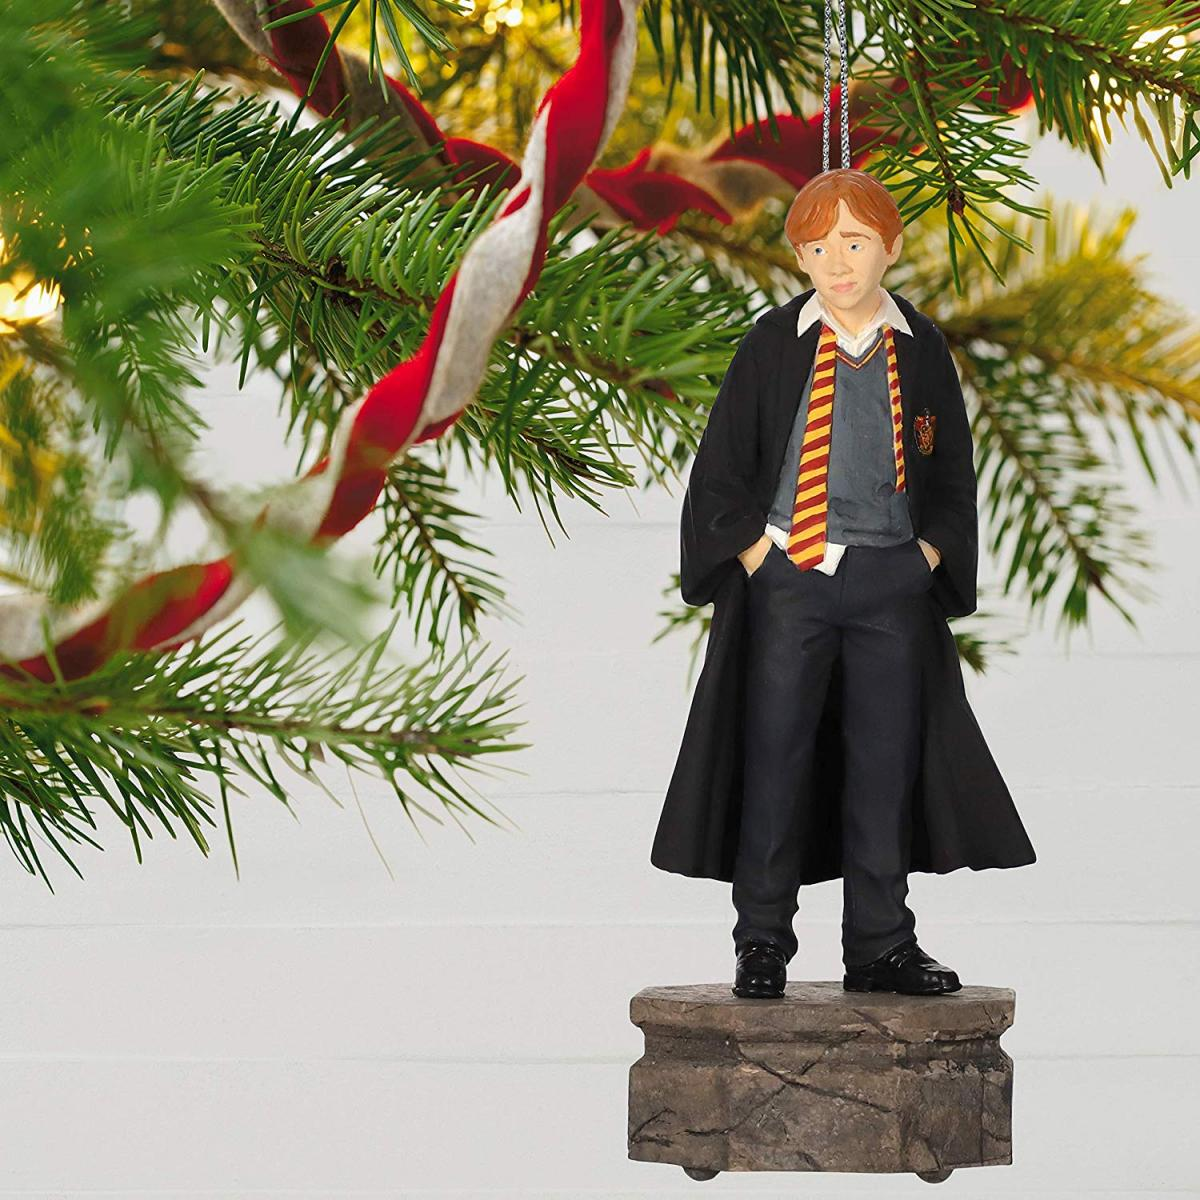 Harry Potter Christmas Tree Topper - Ron Weasley Christmas Ornament